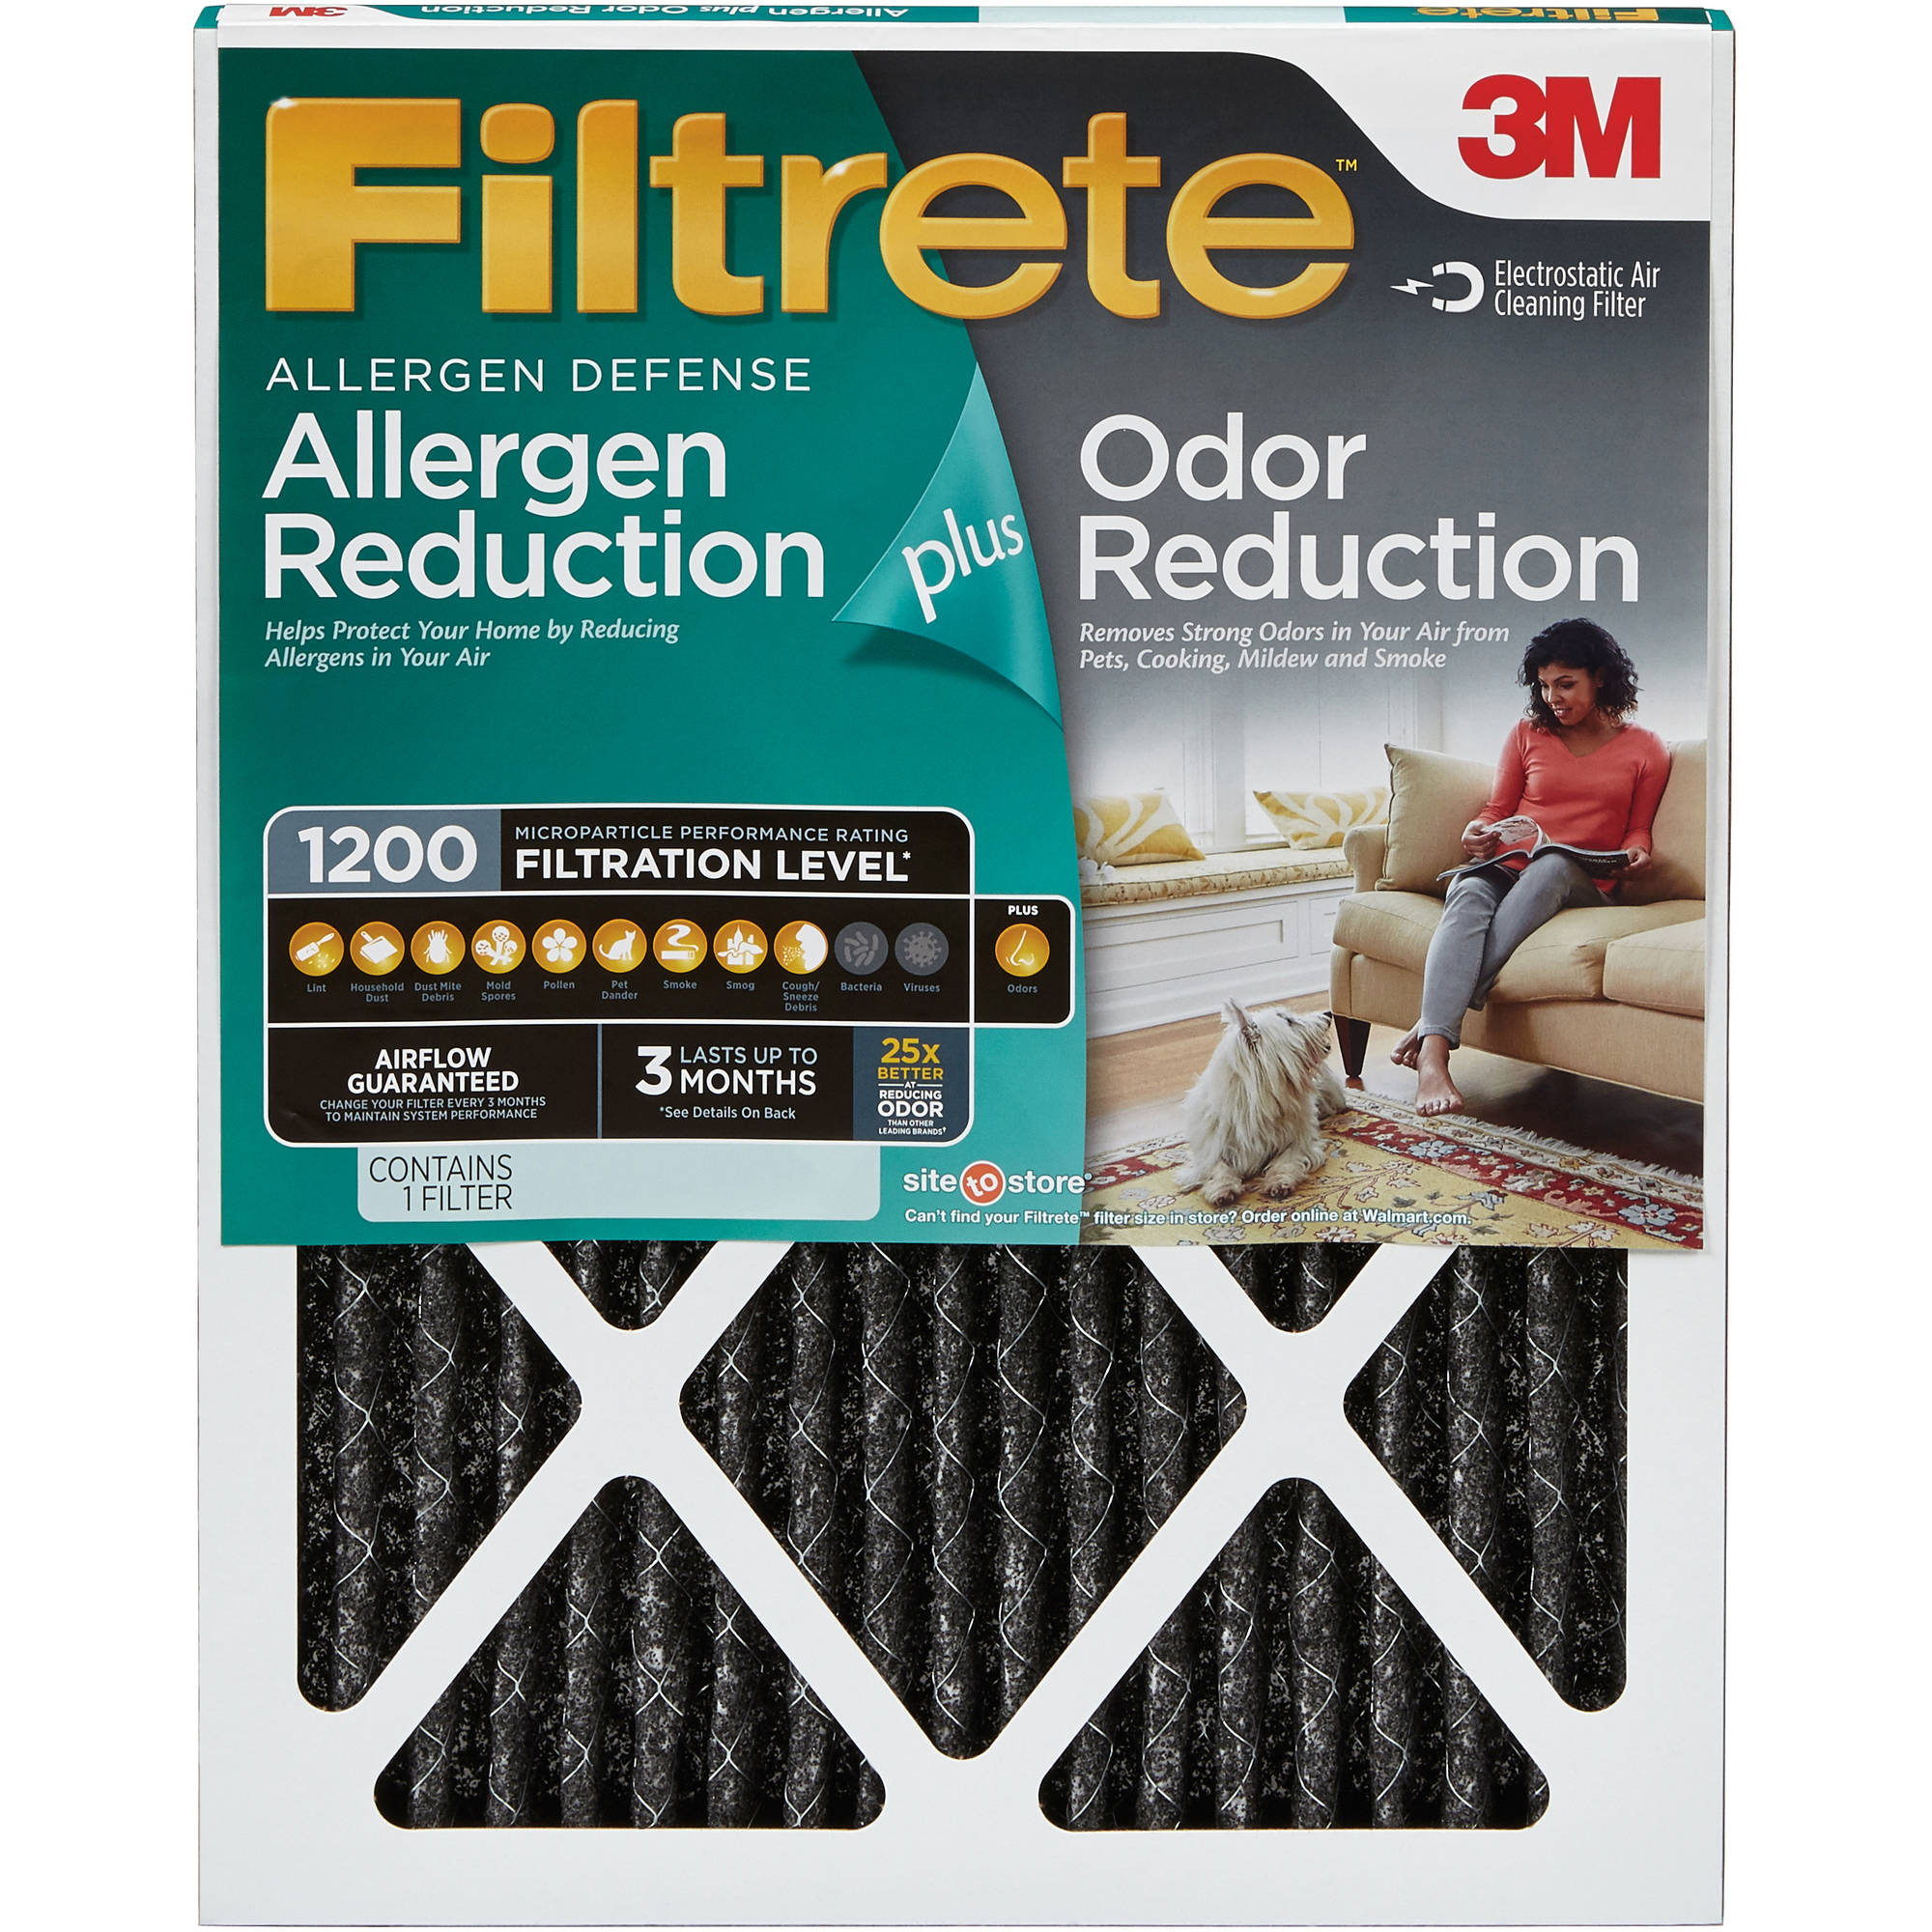 Filtrete Allergen Plus Odor Reduction HVAC Furnace Air Filter, 1200 MPR, 18 x 24 x 1, 1 Filter